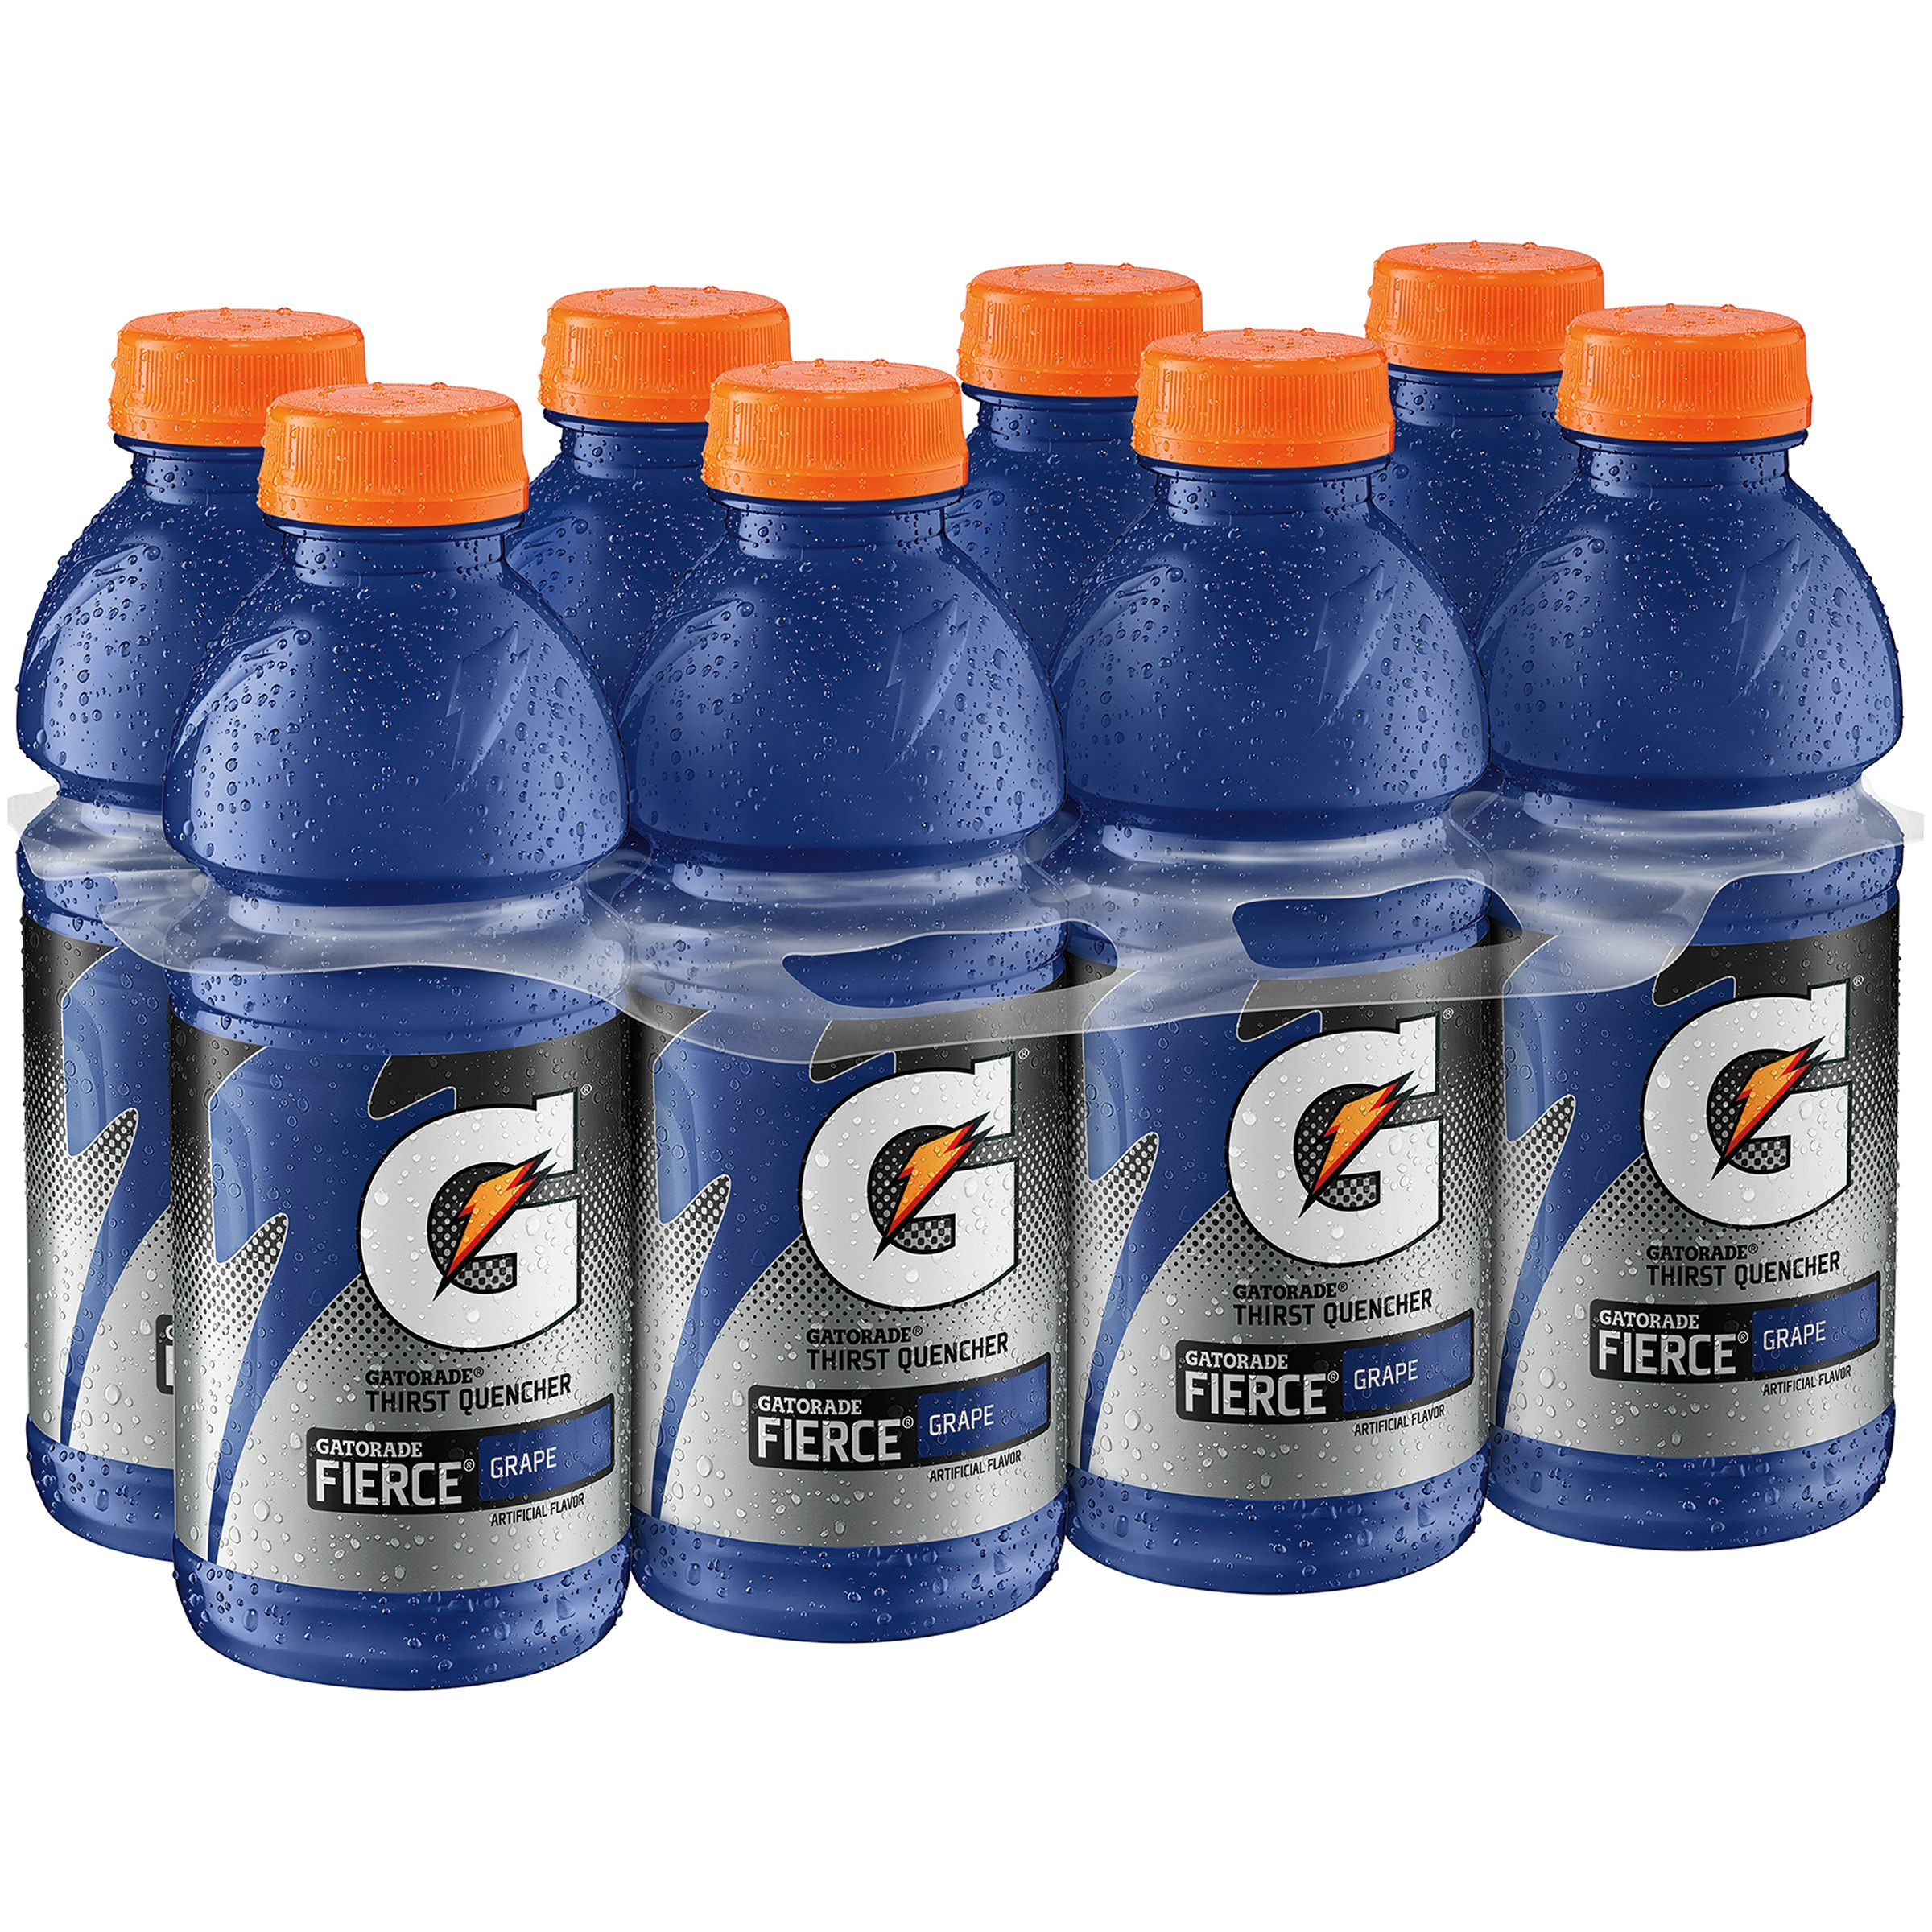 Gatorade Thirst Quencher Fierce Sports Drink, Grape, 20 Fl Oz, 8 Count